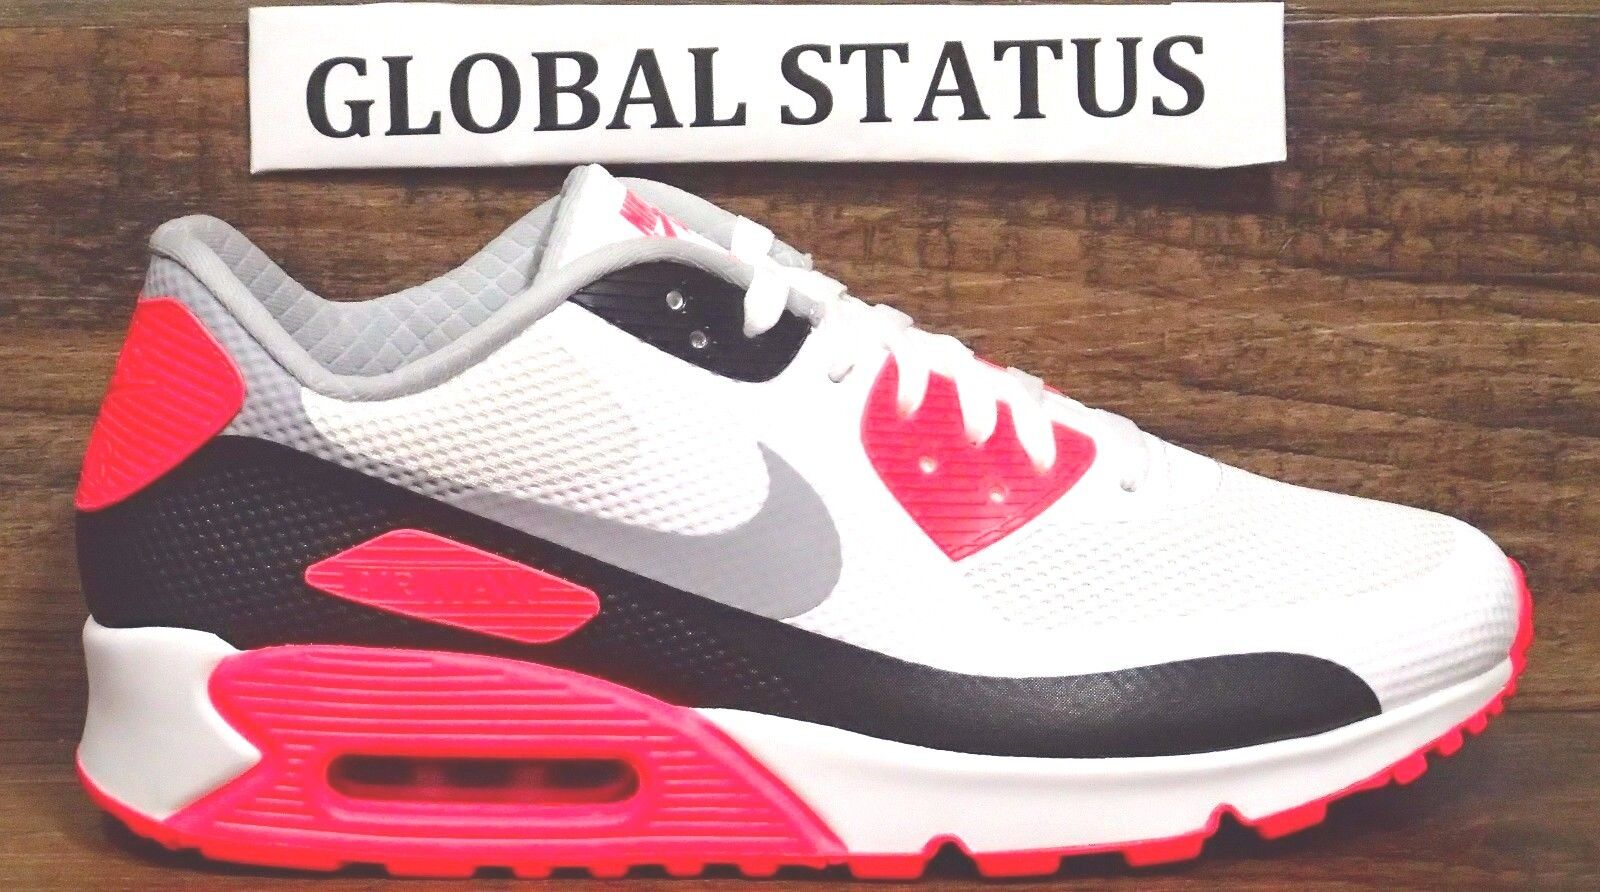 NIKE ID MEN AIR MAX 90 HYPERFUSE WHITE INFRARED SOLAR RED SHOES 822560 997 SZ 10